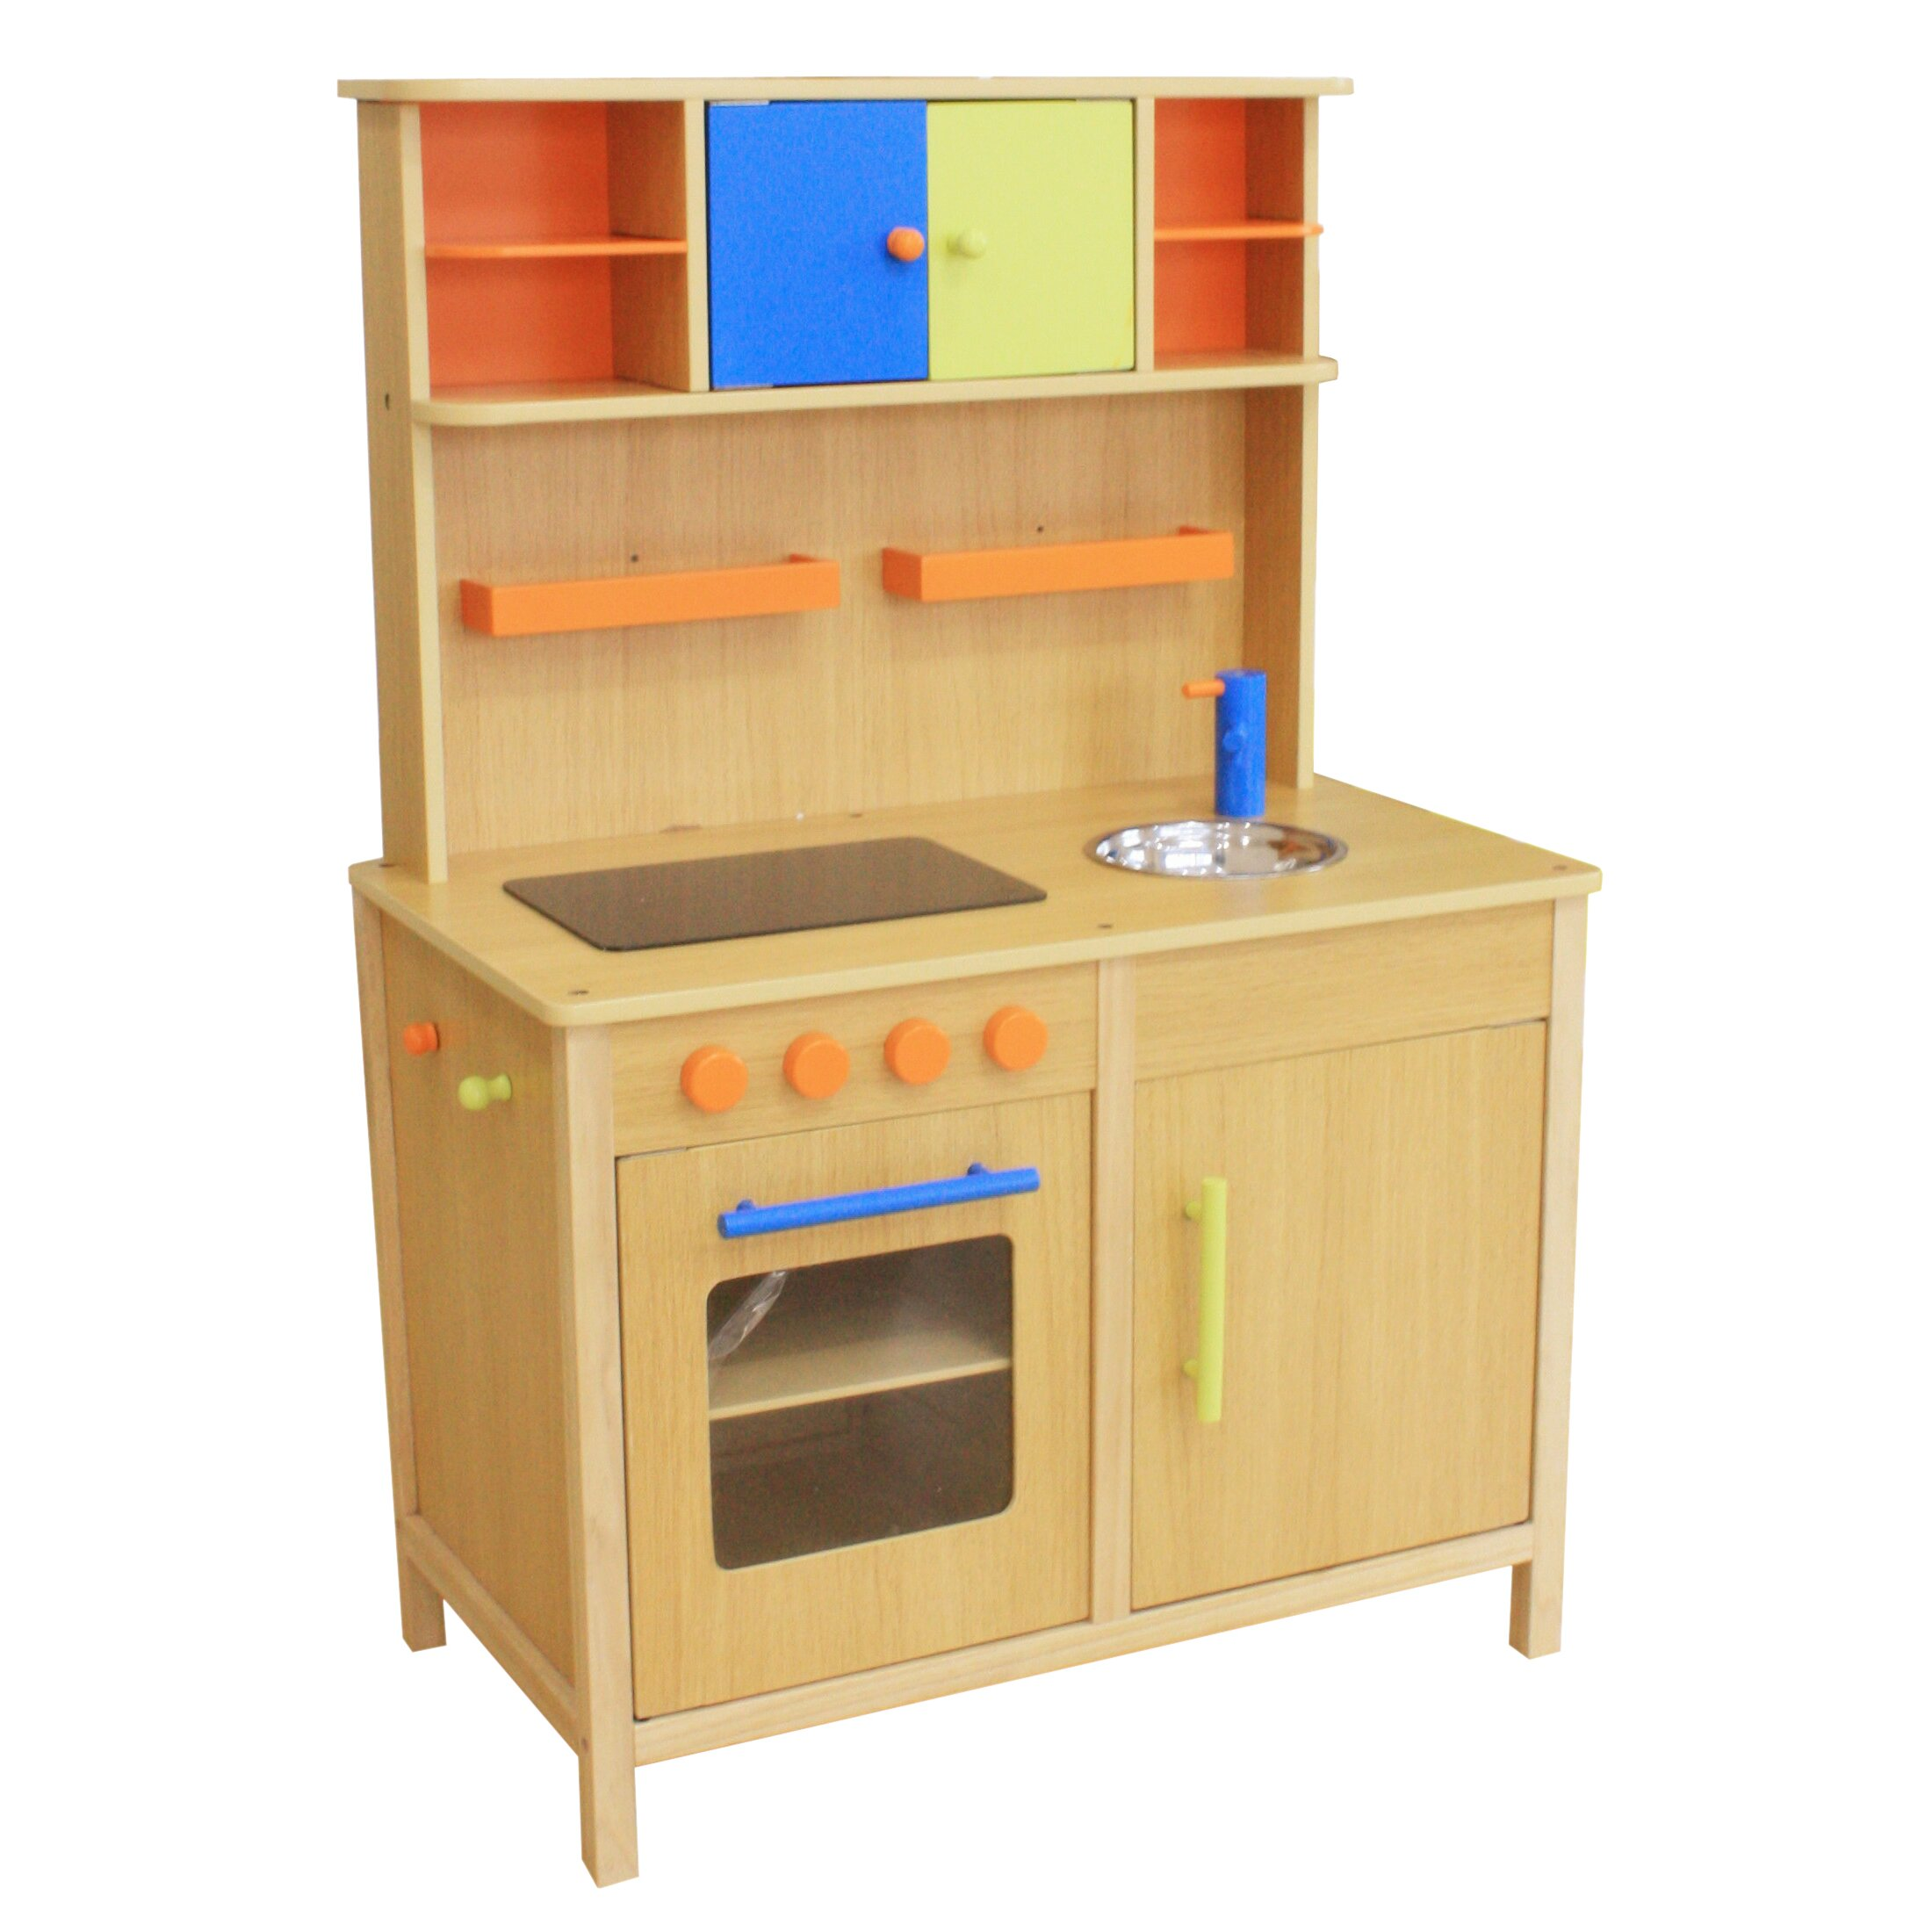 Wood Play Kitchen: Lots Of Fun Wooden Play Kitchen